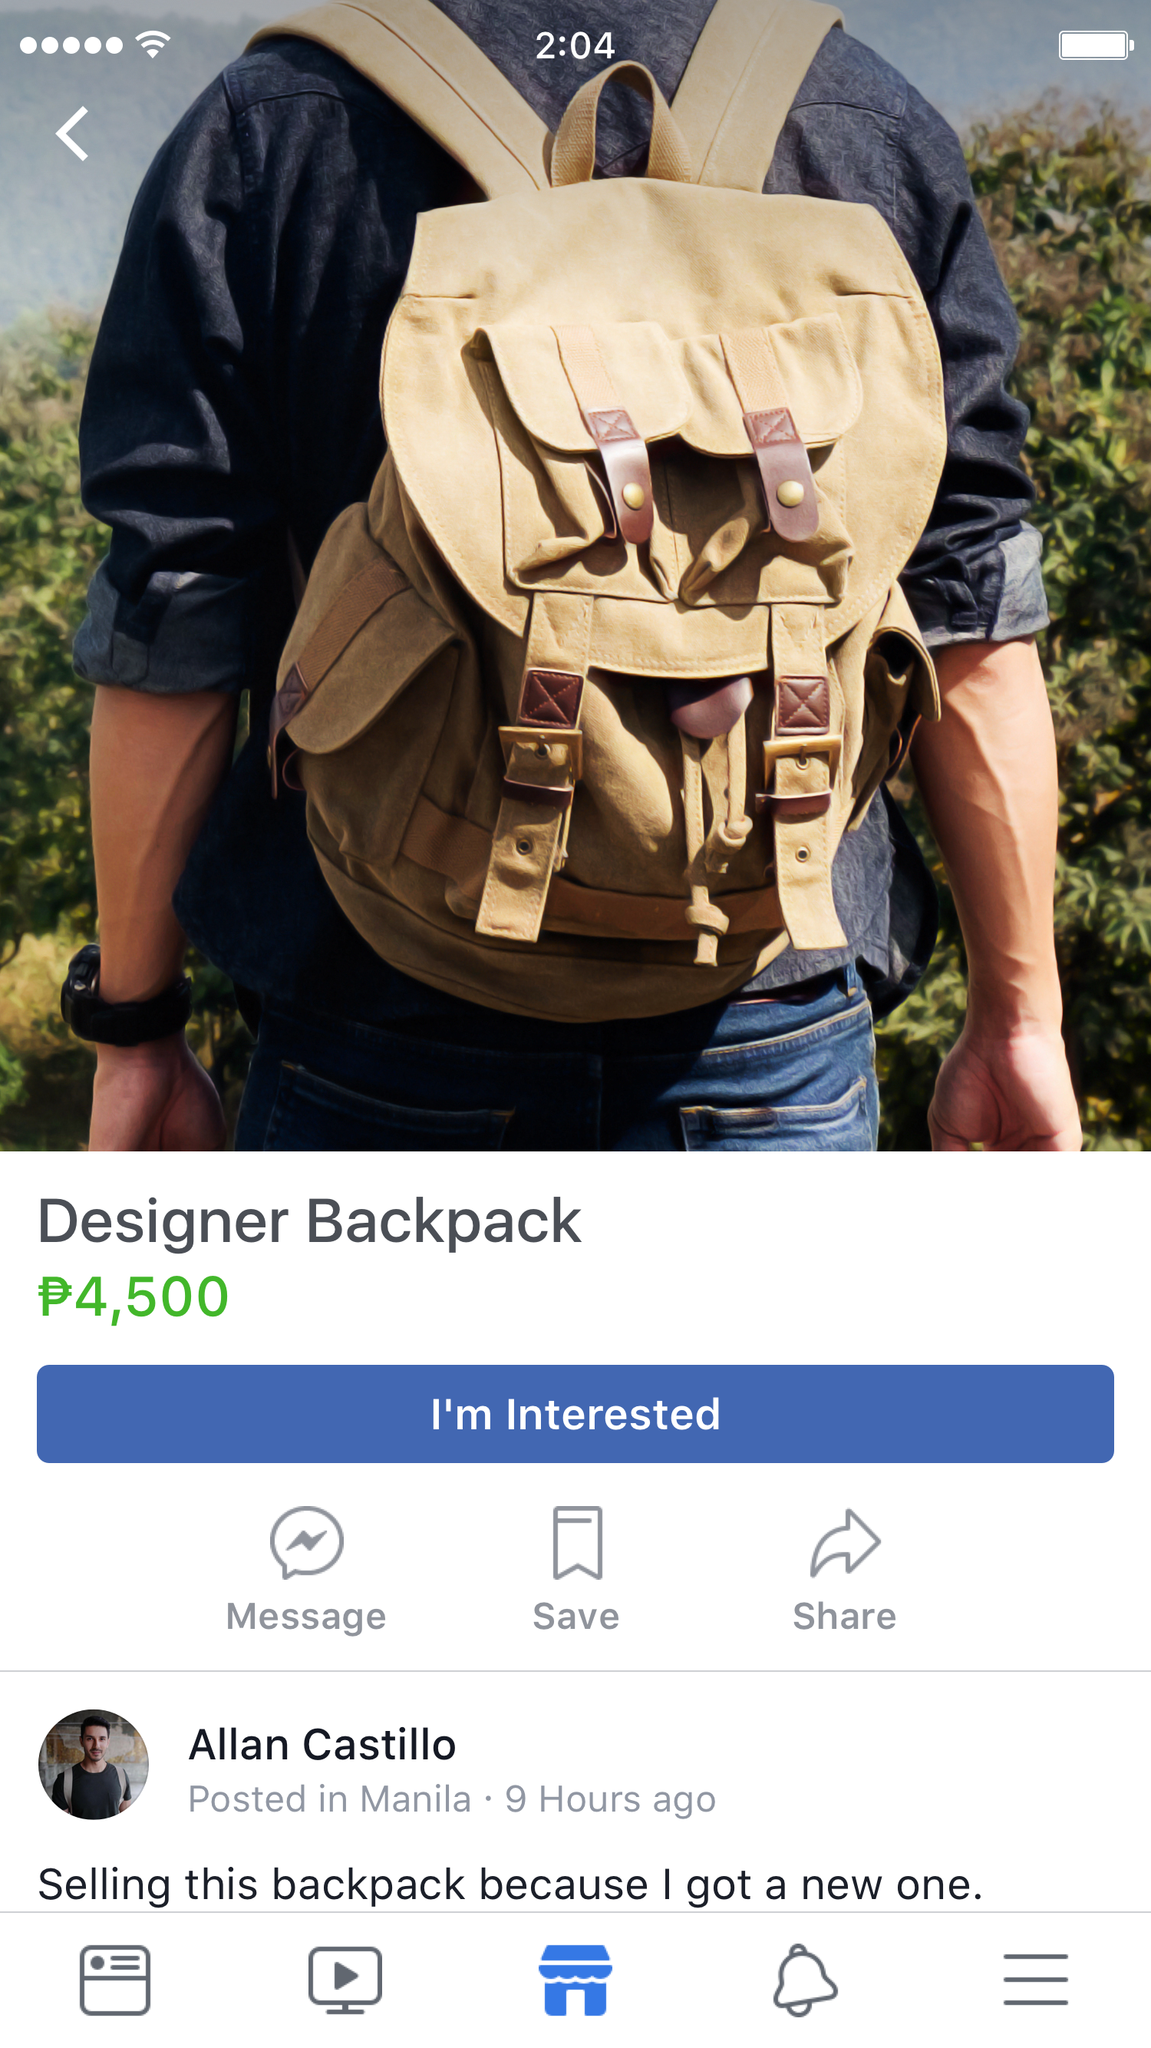 Click on the item to see the item's image clearly and see the seller's photo. (Image from Facebook)